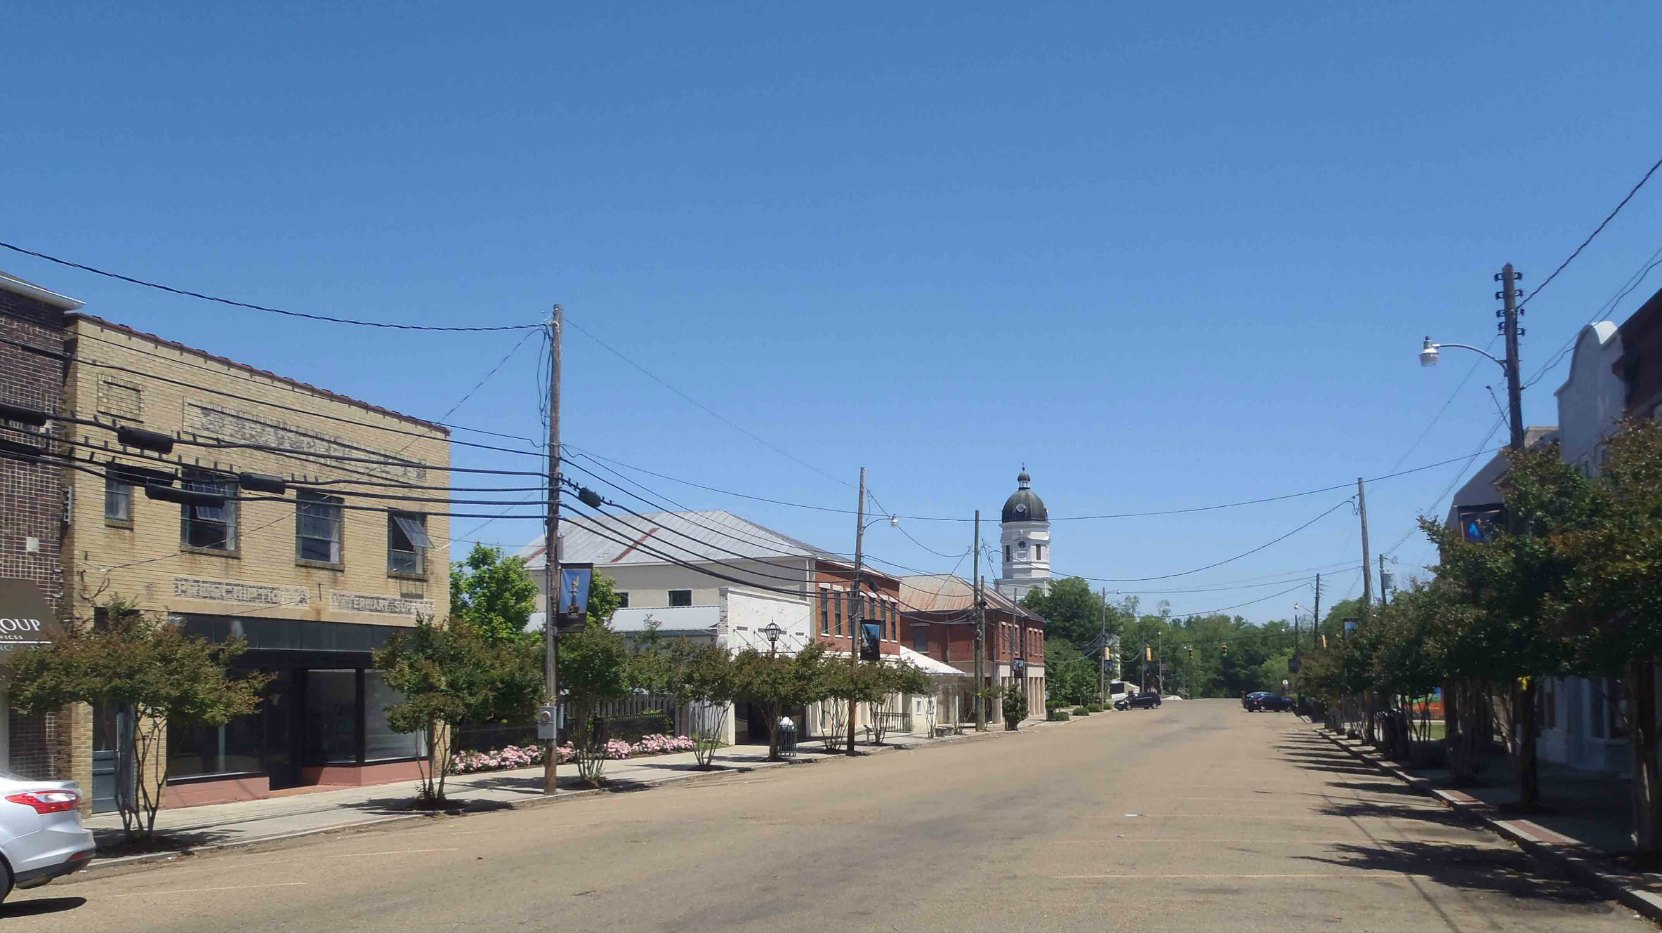 Market Street, the main downtown street in Port Gibson, Claiborne County, Mississippi. The tower of the Claiborne County Courthouse is visible in the background.